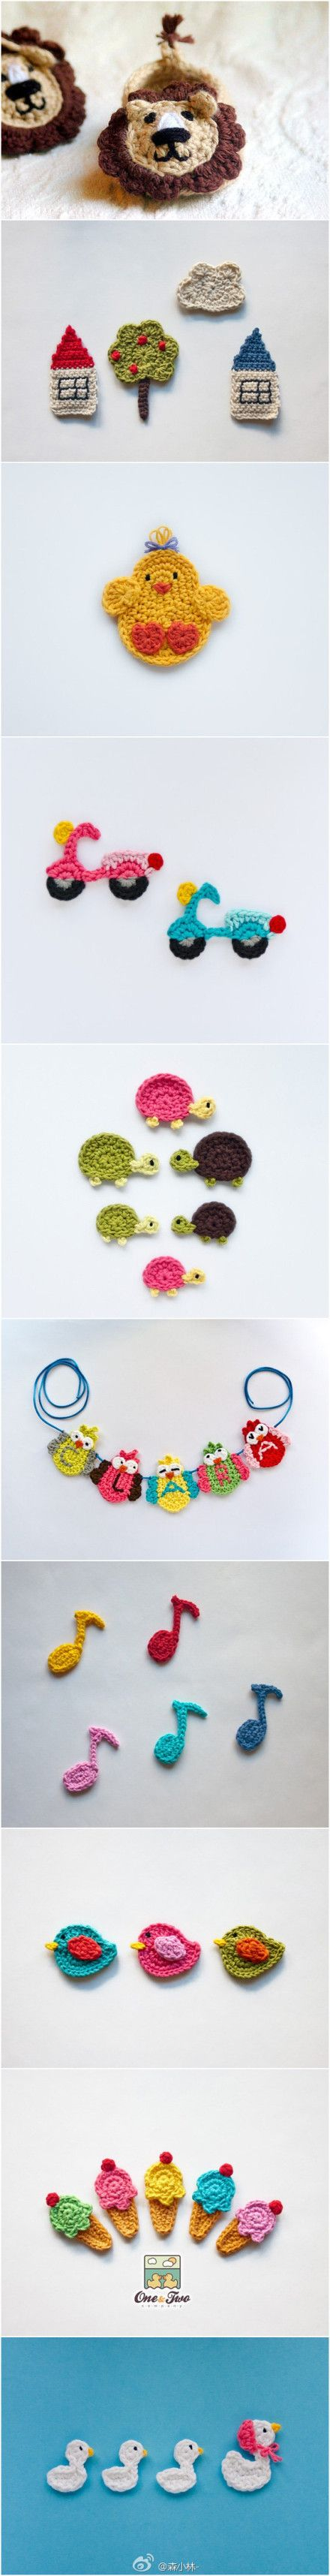 2680 best crochet images on Pinterest | Book markers, Marque page ...